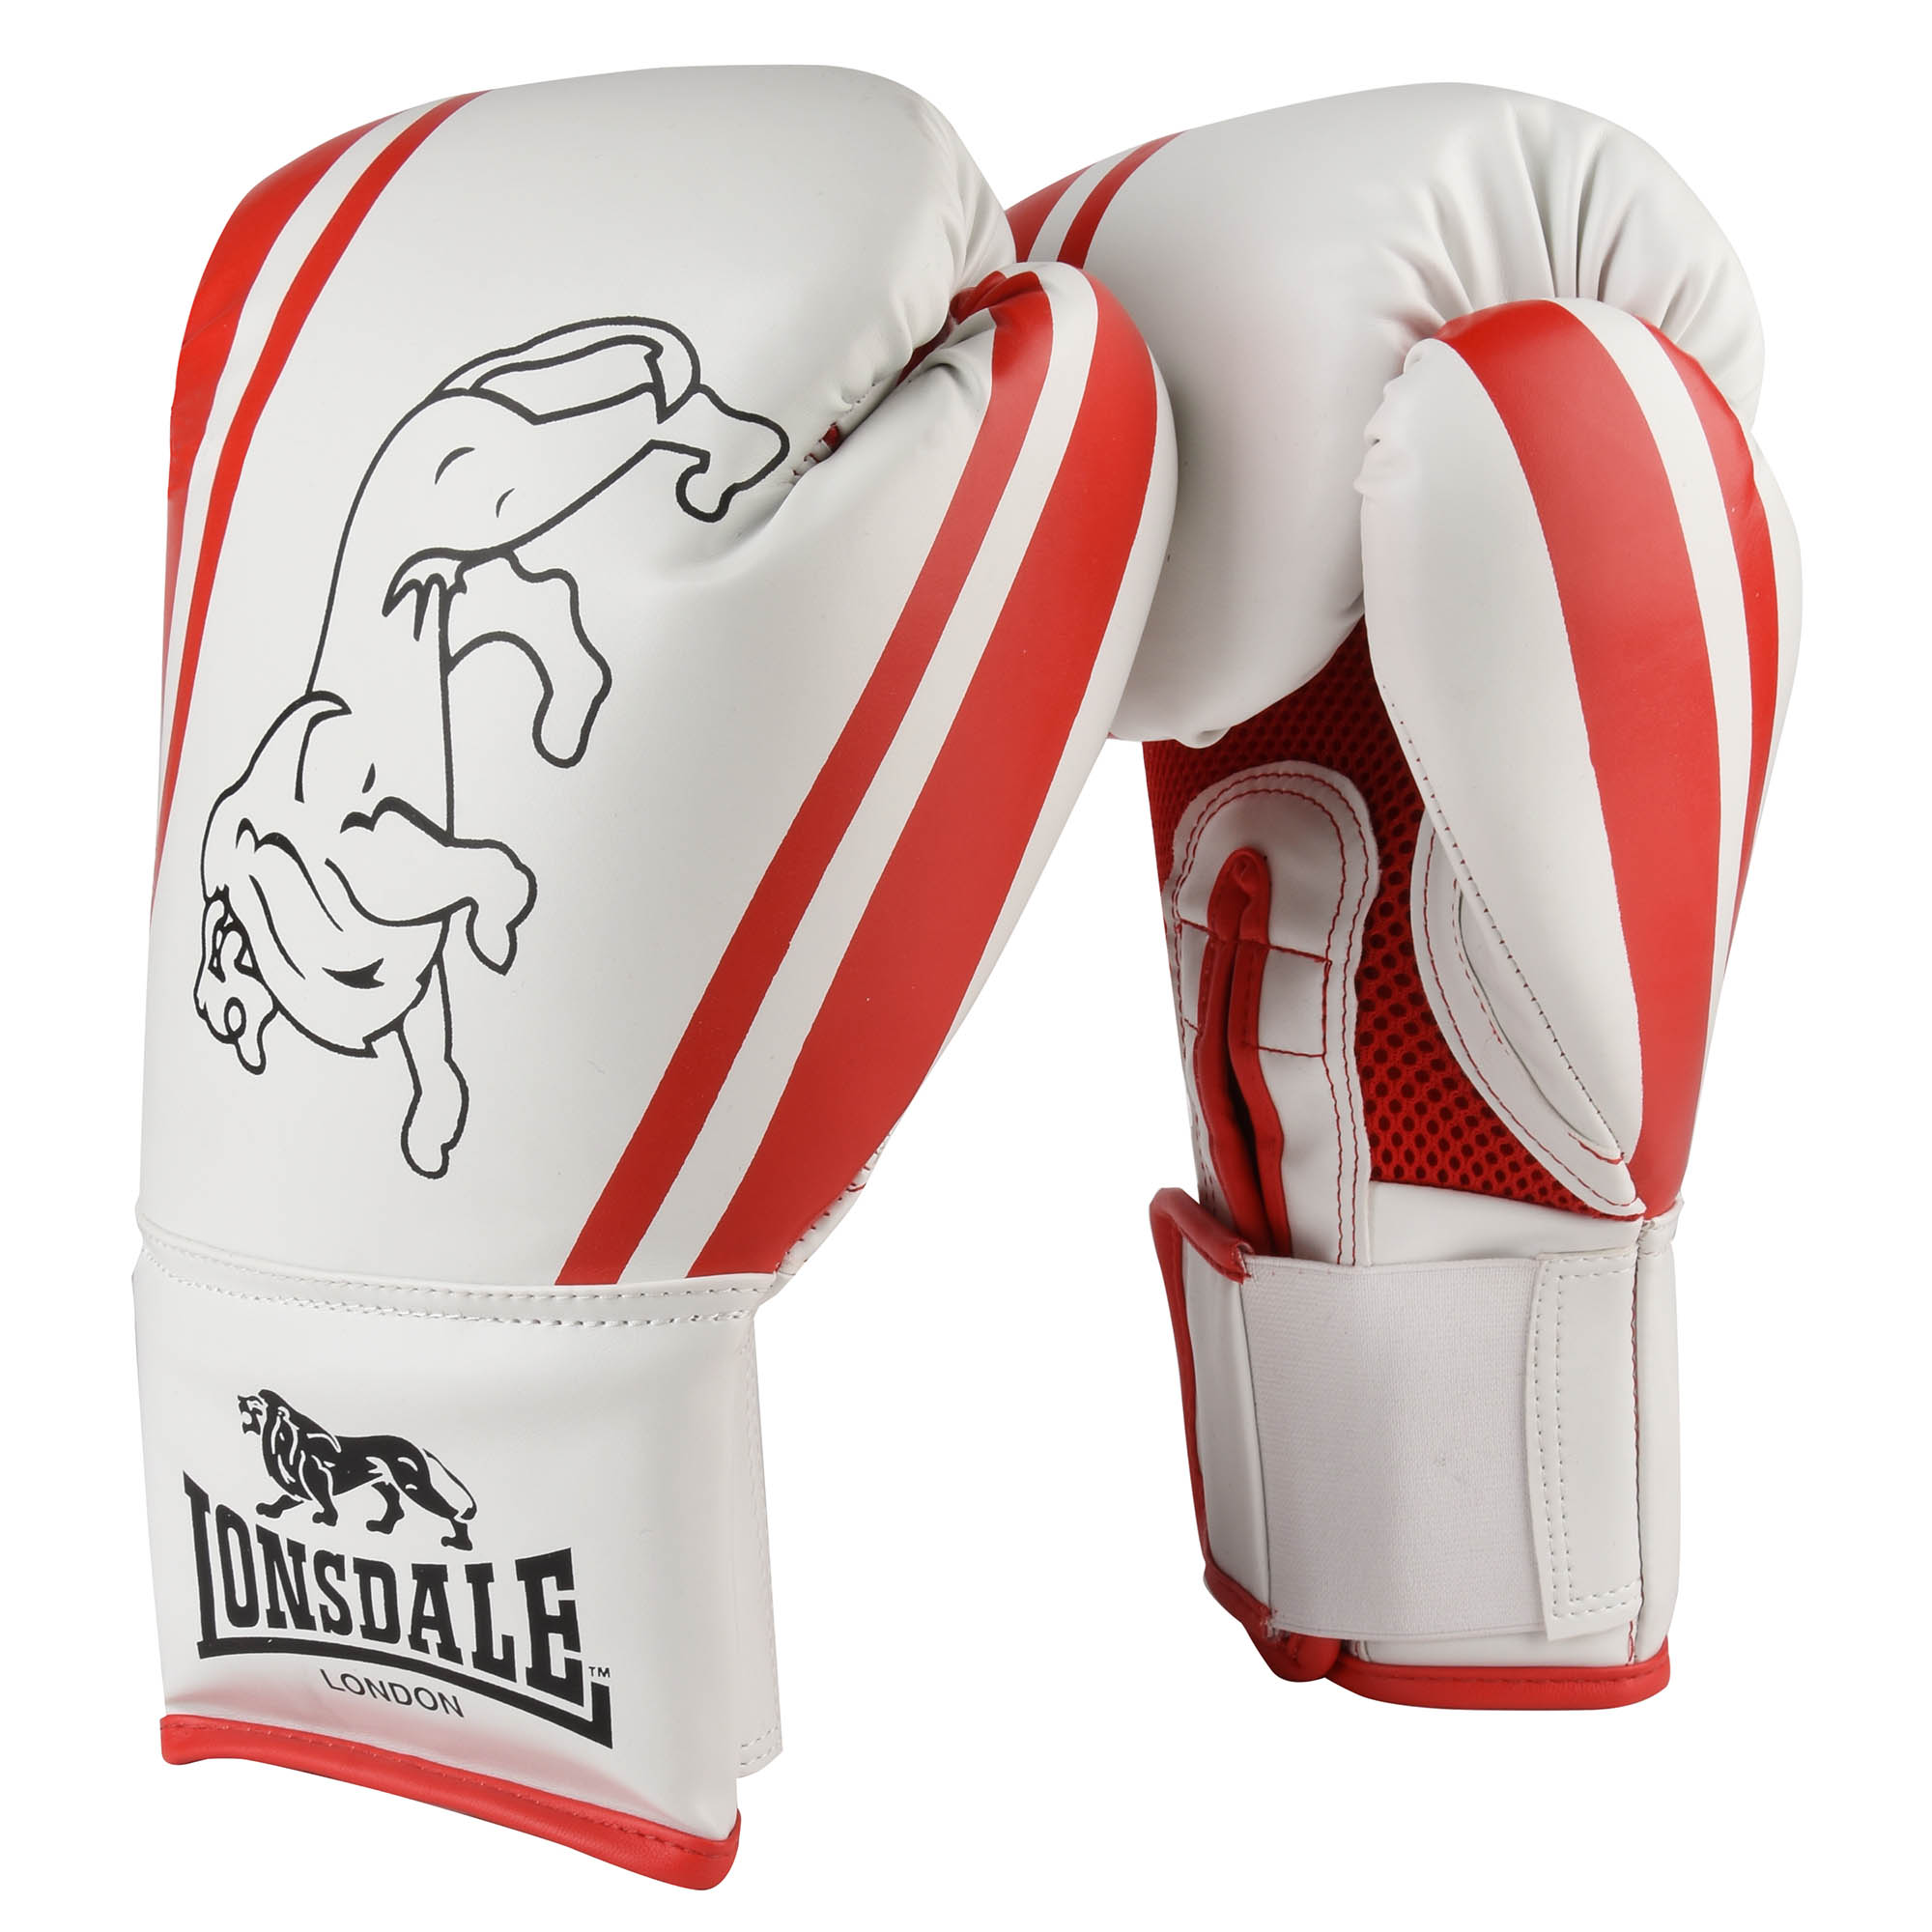 Lonsdale Club Training Gloves - White/Red, 10oz